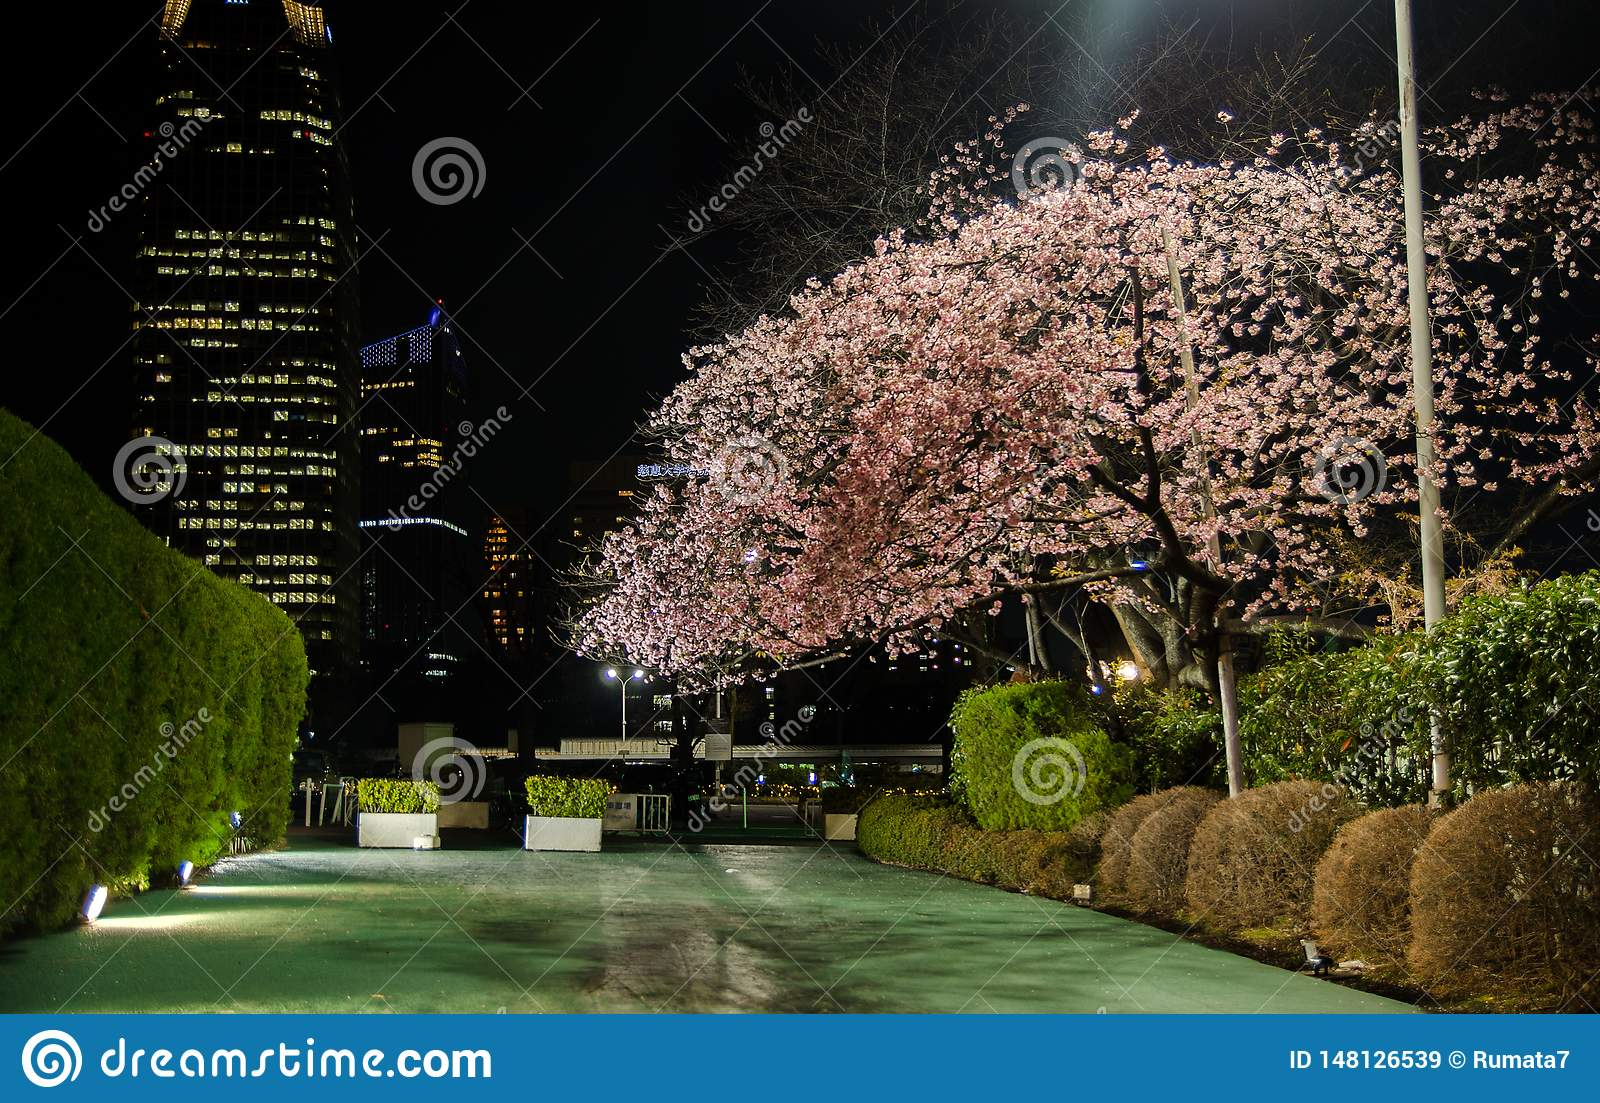 Mystery garden with Cherry Blossoms at night in Tokyo